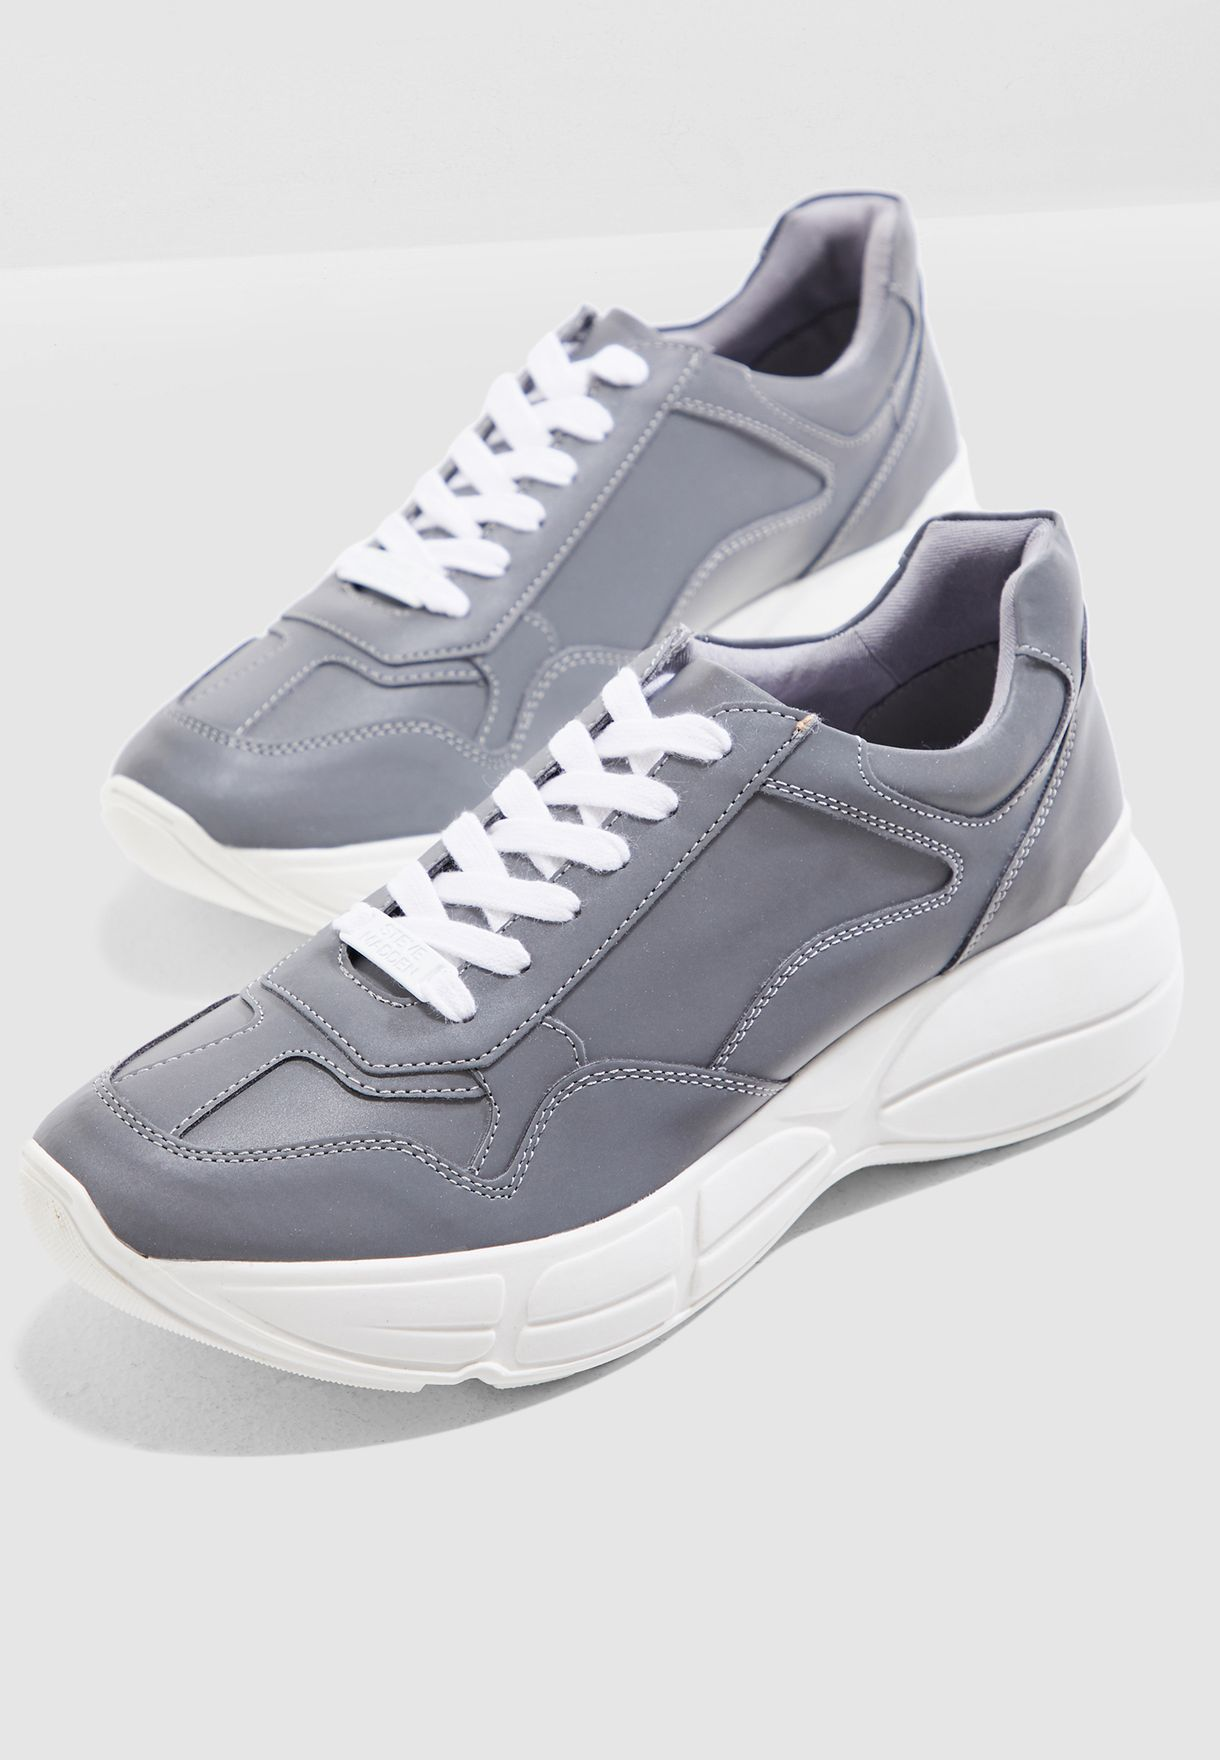 8da0bb98804 Shop Steve Madden grey Memory Chunky Sneaker MEMORY for Women in UAE ...